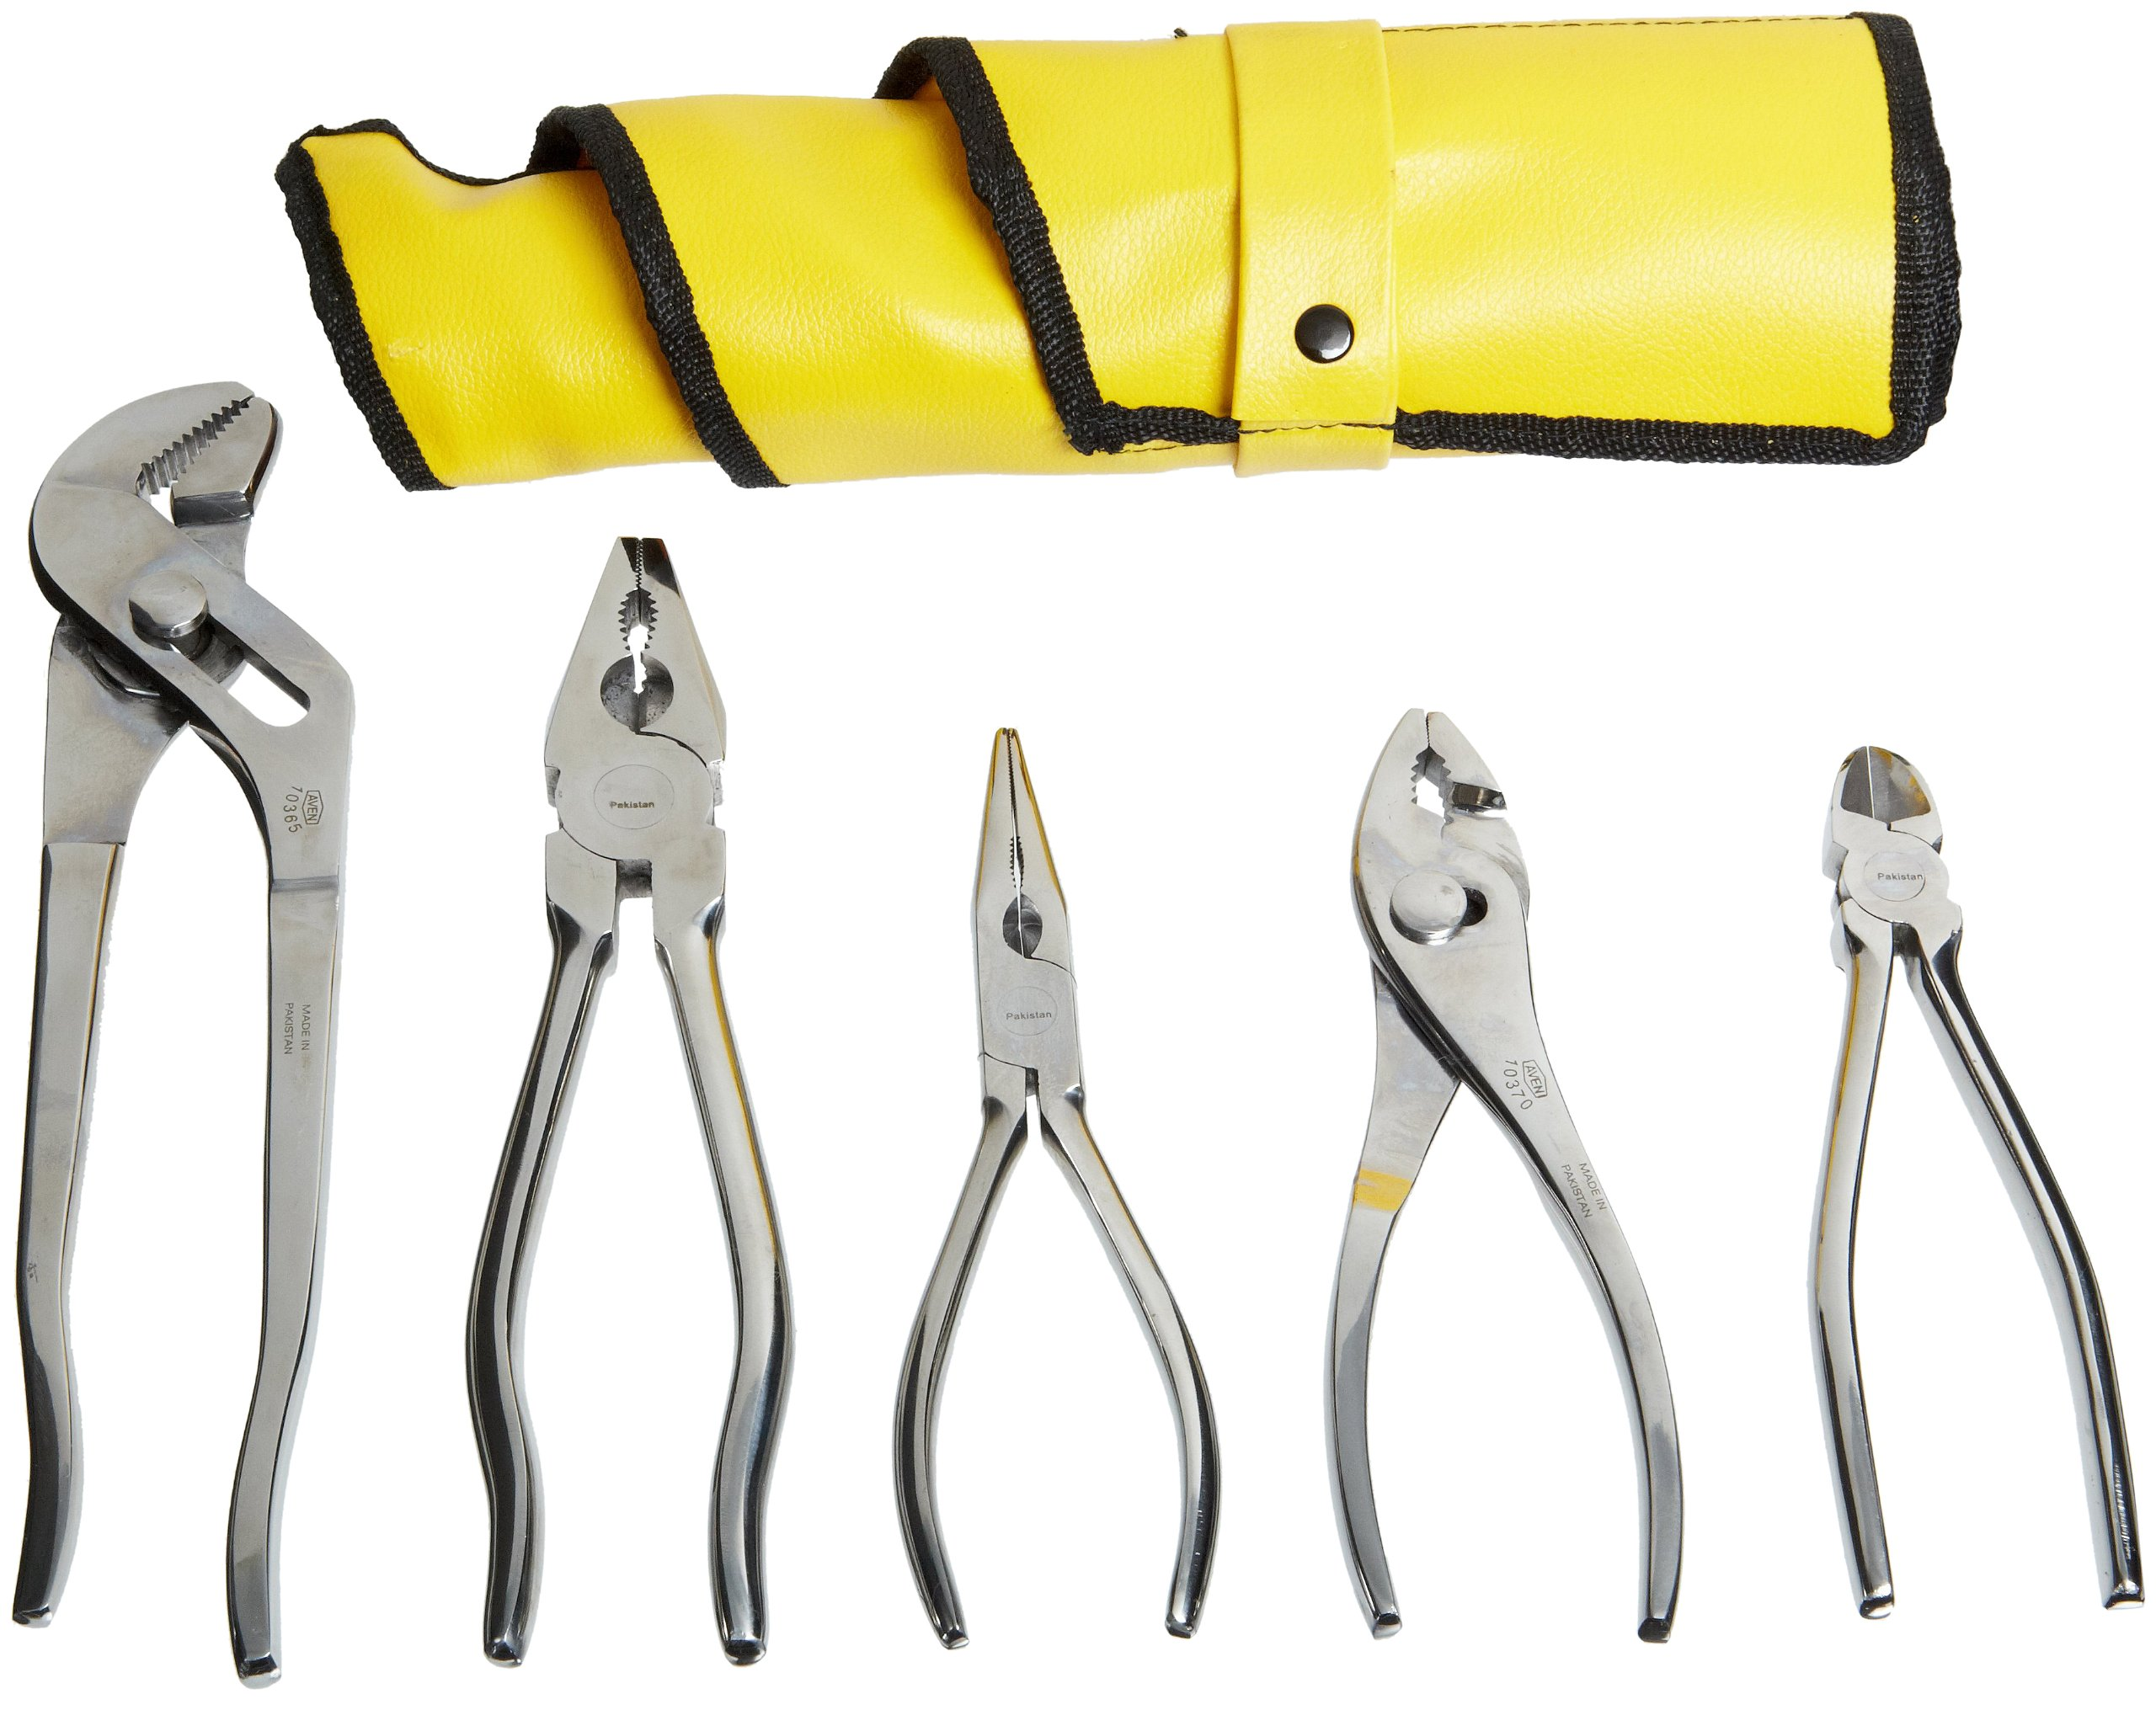 Aven 10381 Stainless Steel Pliers Set, 5-piece In Roll Up Pouch by Aven